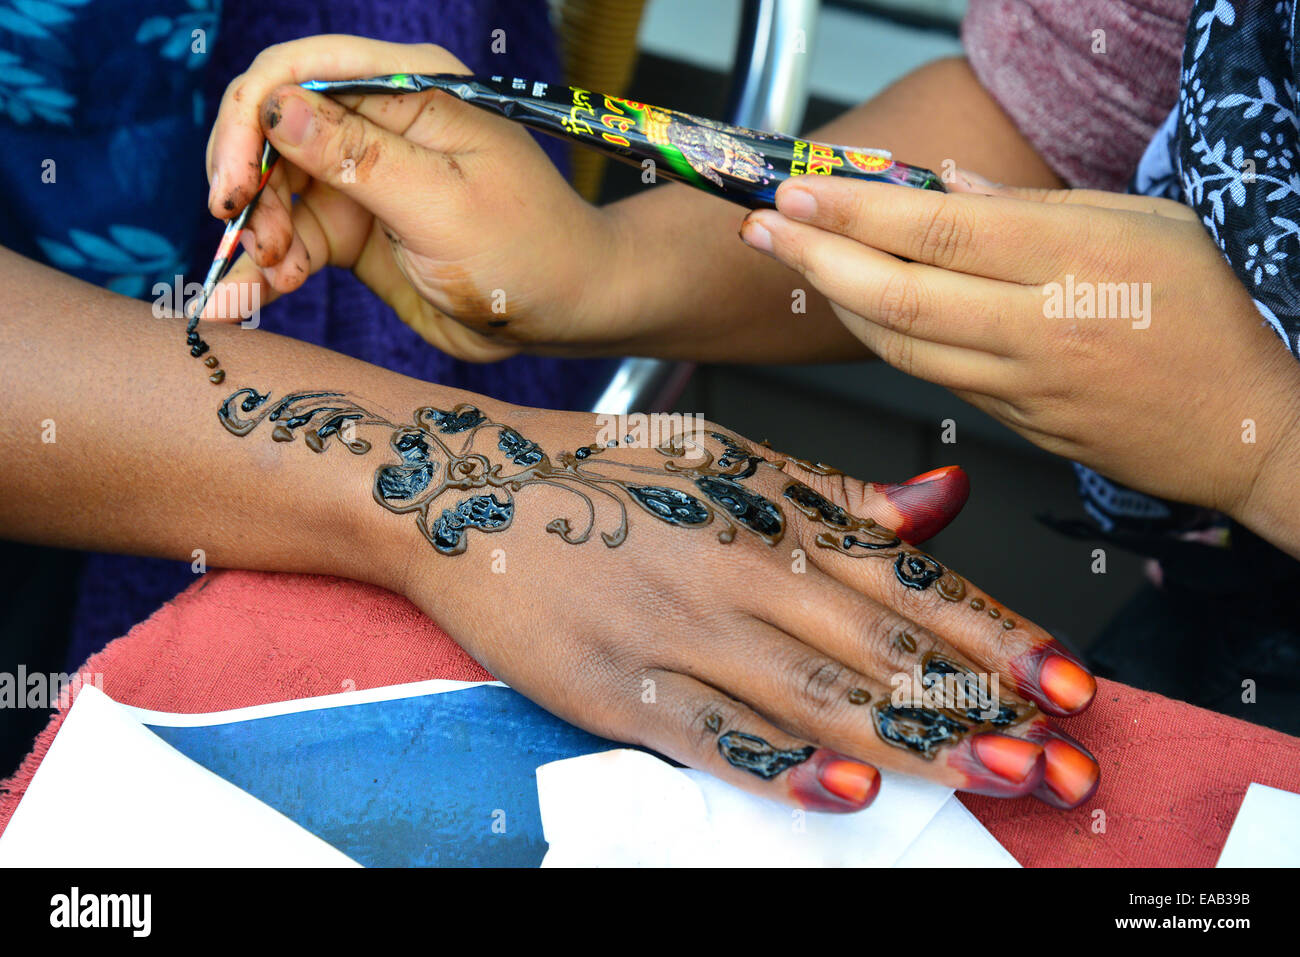 Henna tattooing stall, The Broadway, Southall, London Borough of Ealing, Greater London, England, United Kingdom - Stock Image